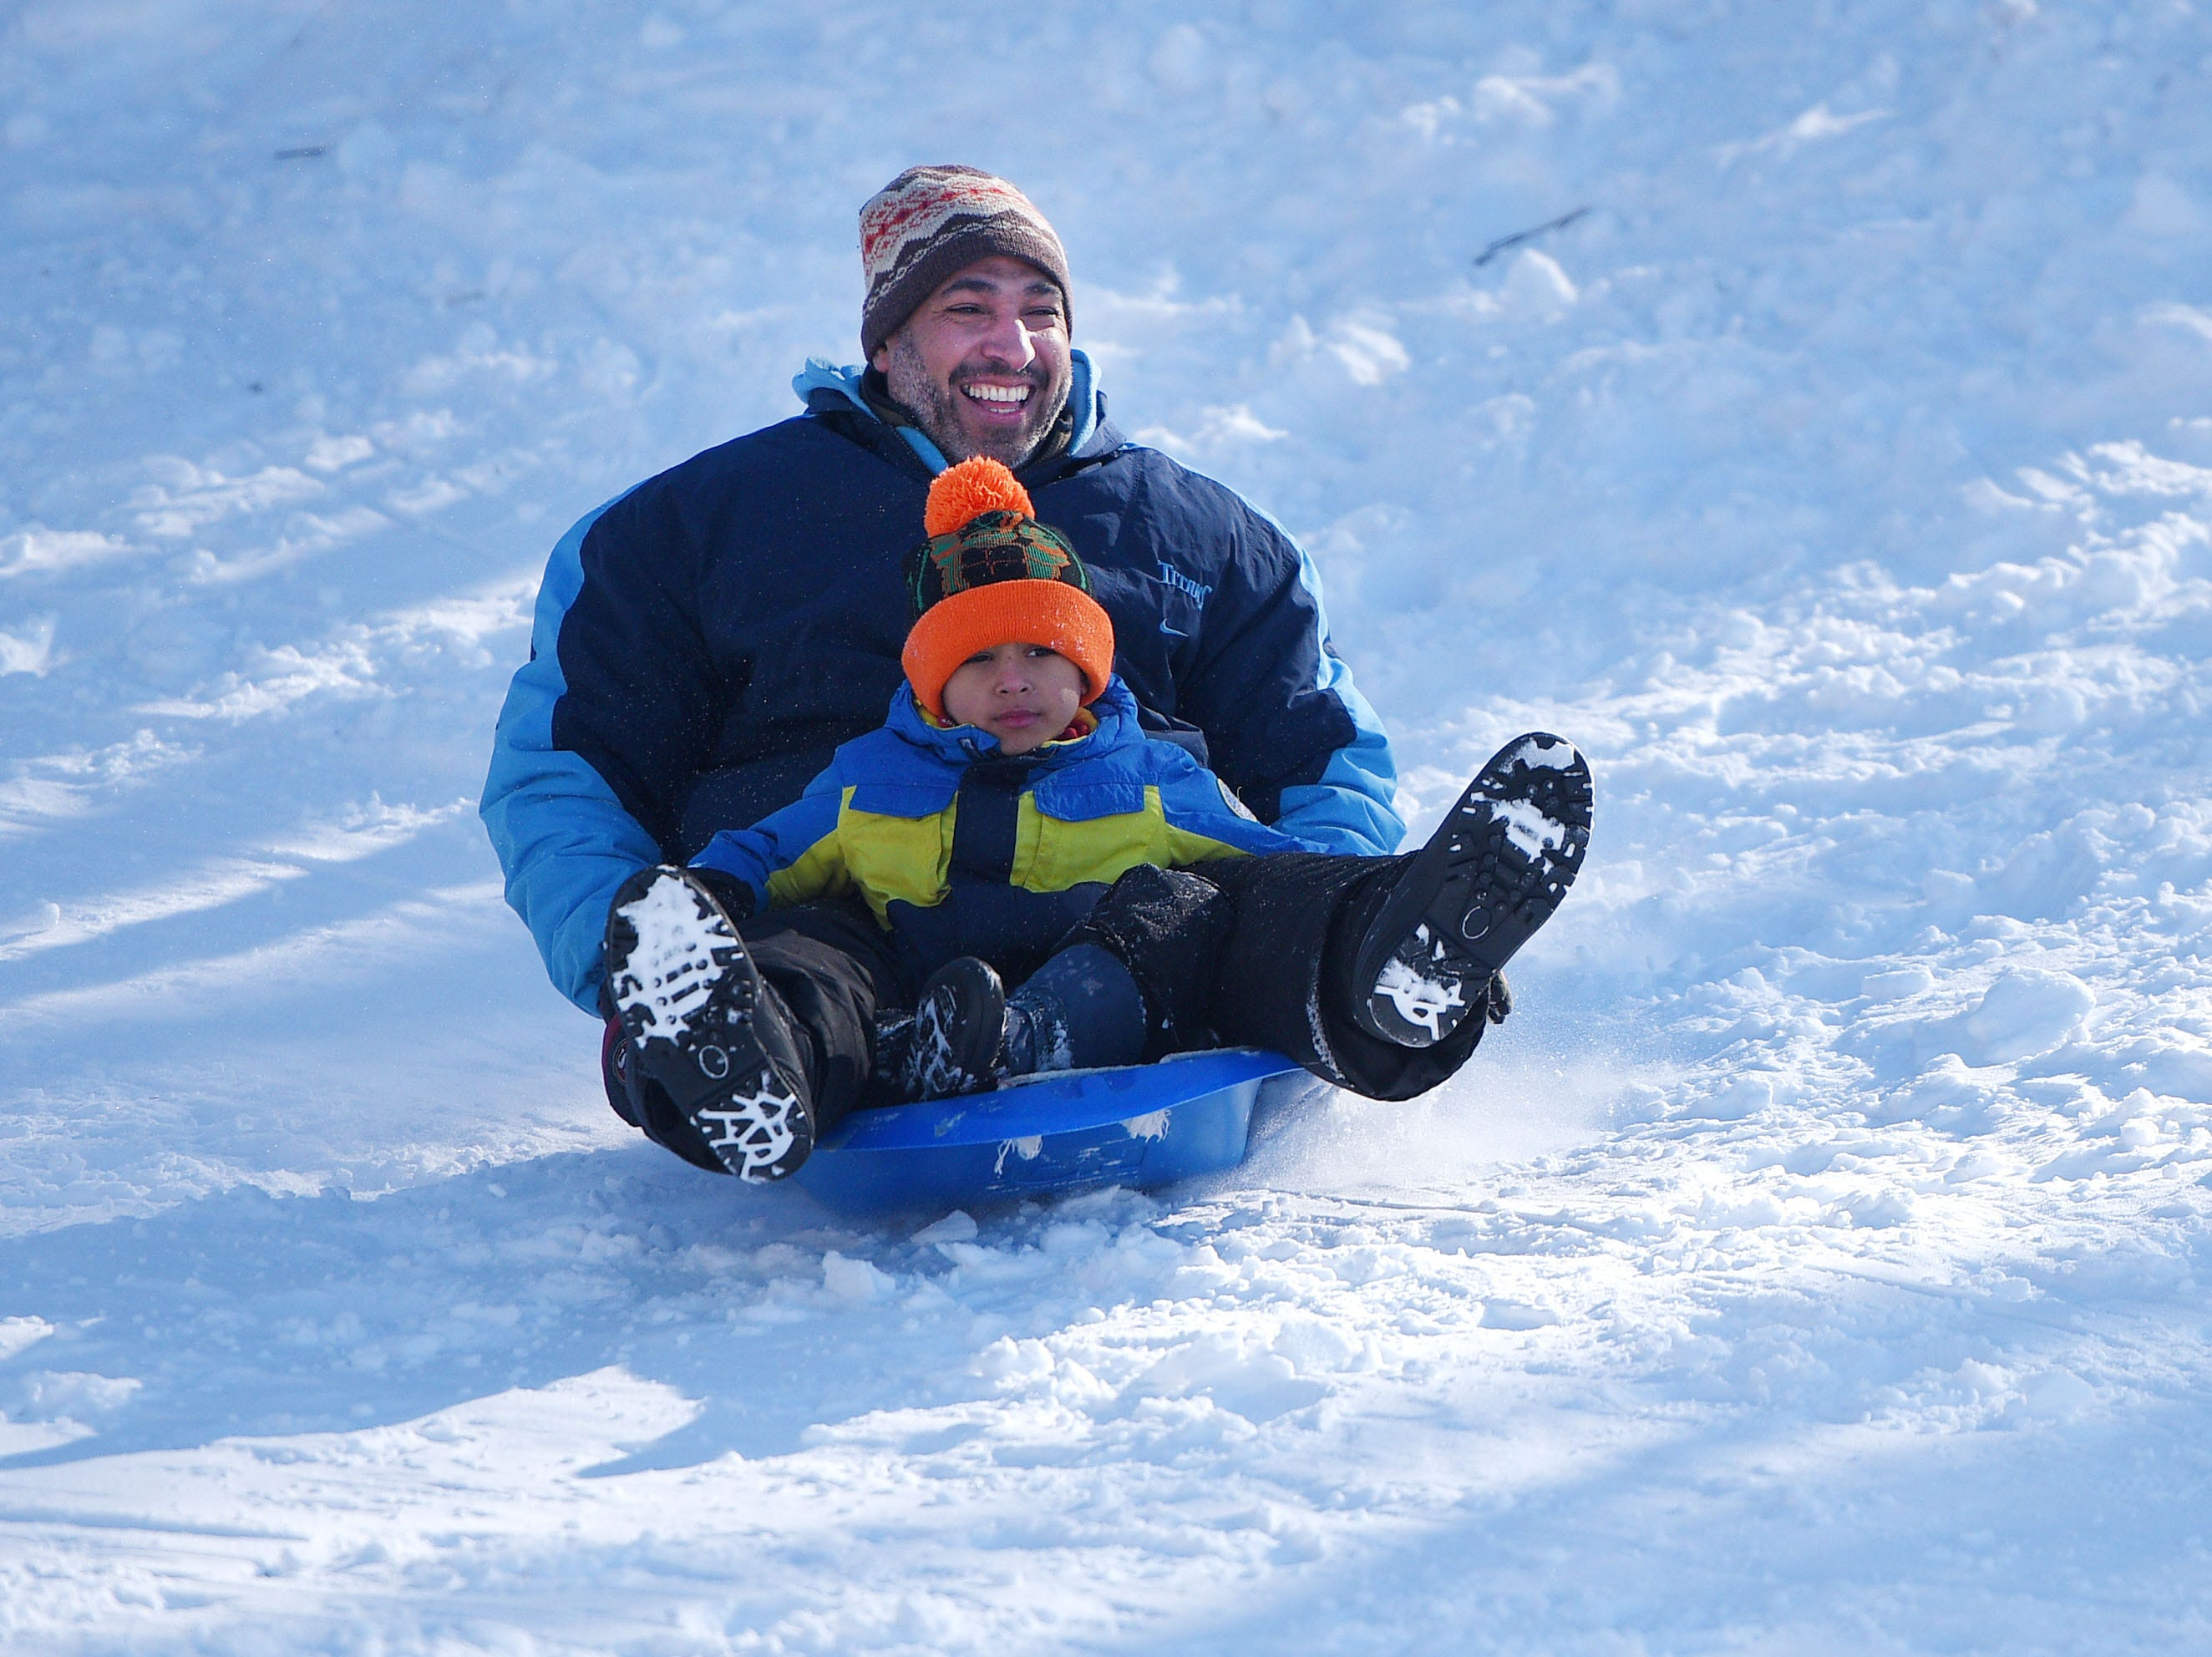 Shamkhi Alkutayfi and his son Hassan Alkutayfi go sledding at Tuthill Park Monday, Feb. 18, in Sioux Falls.